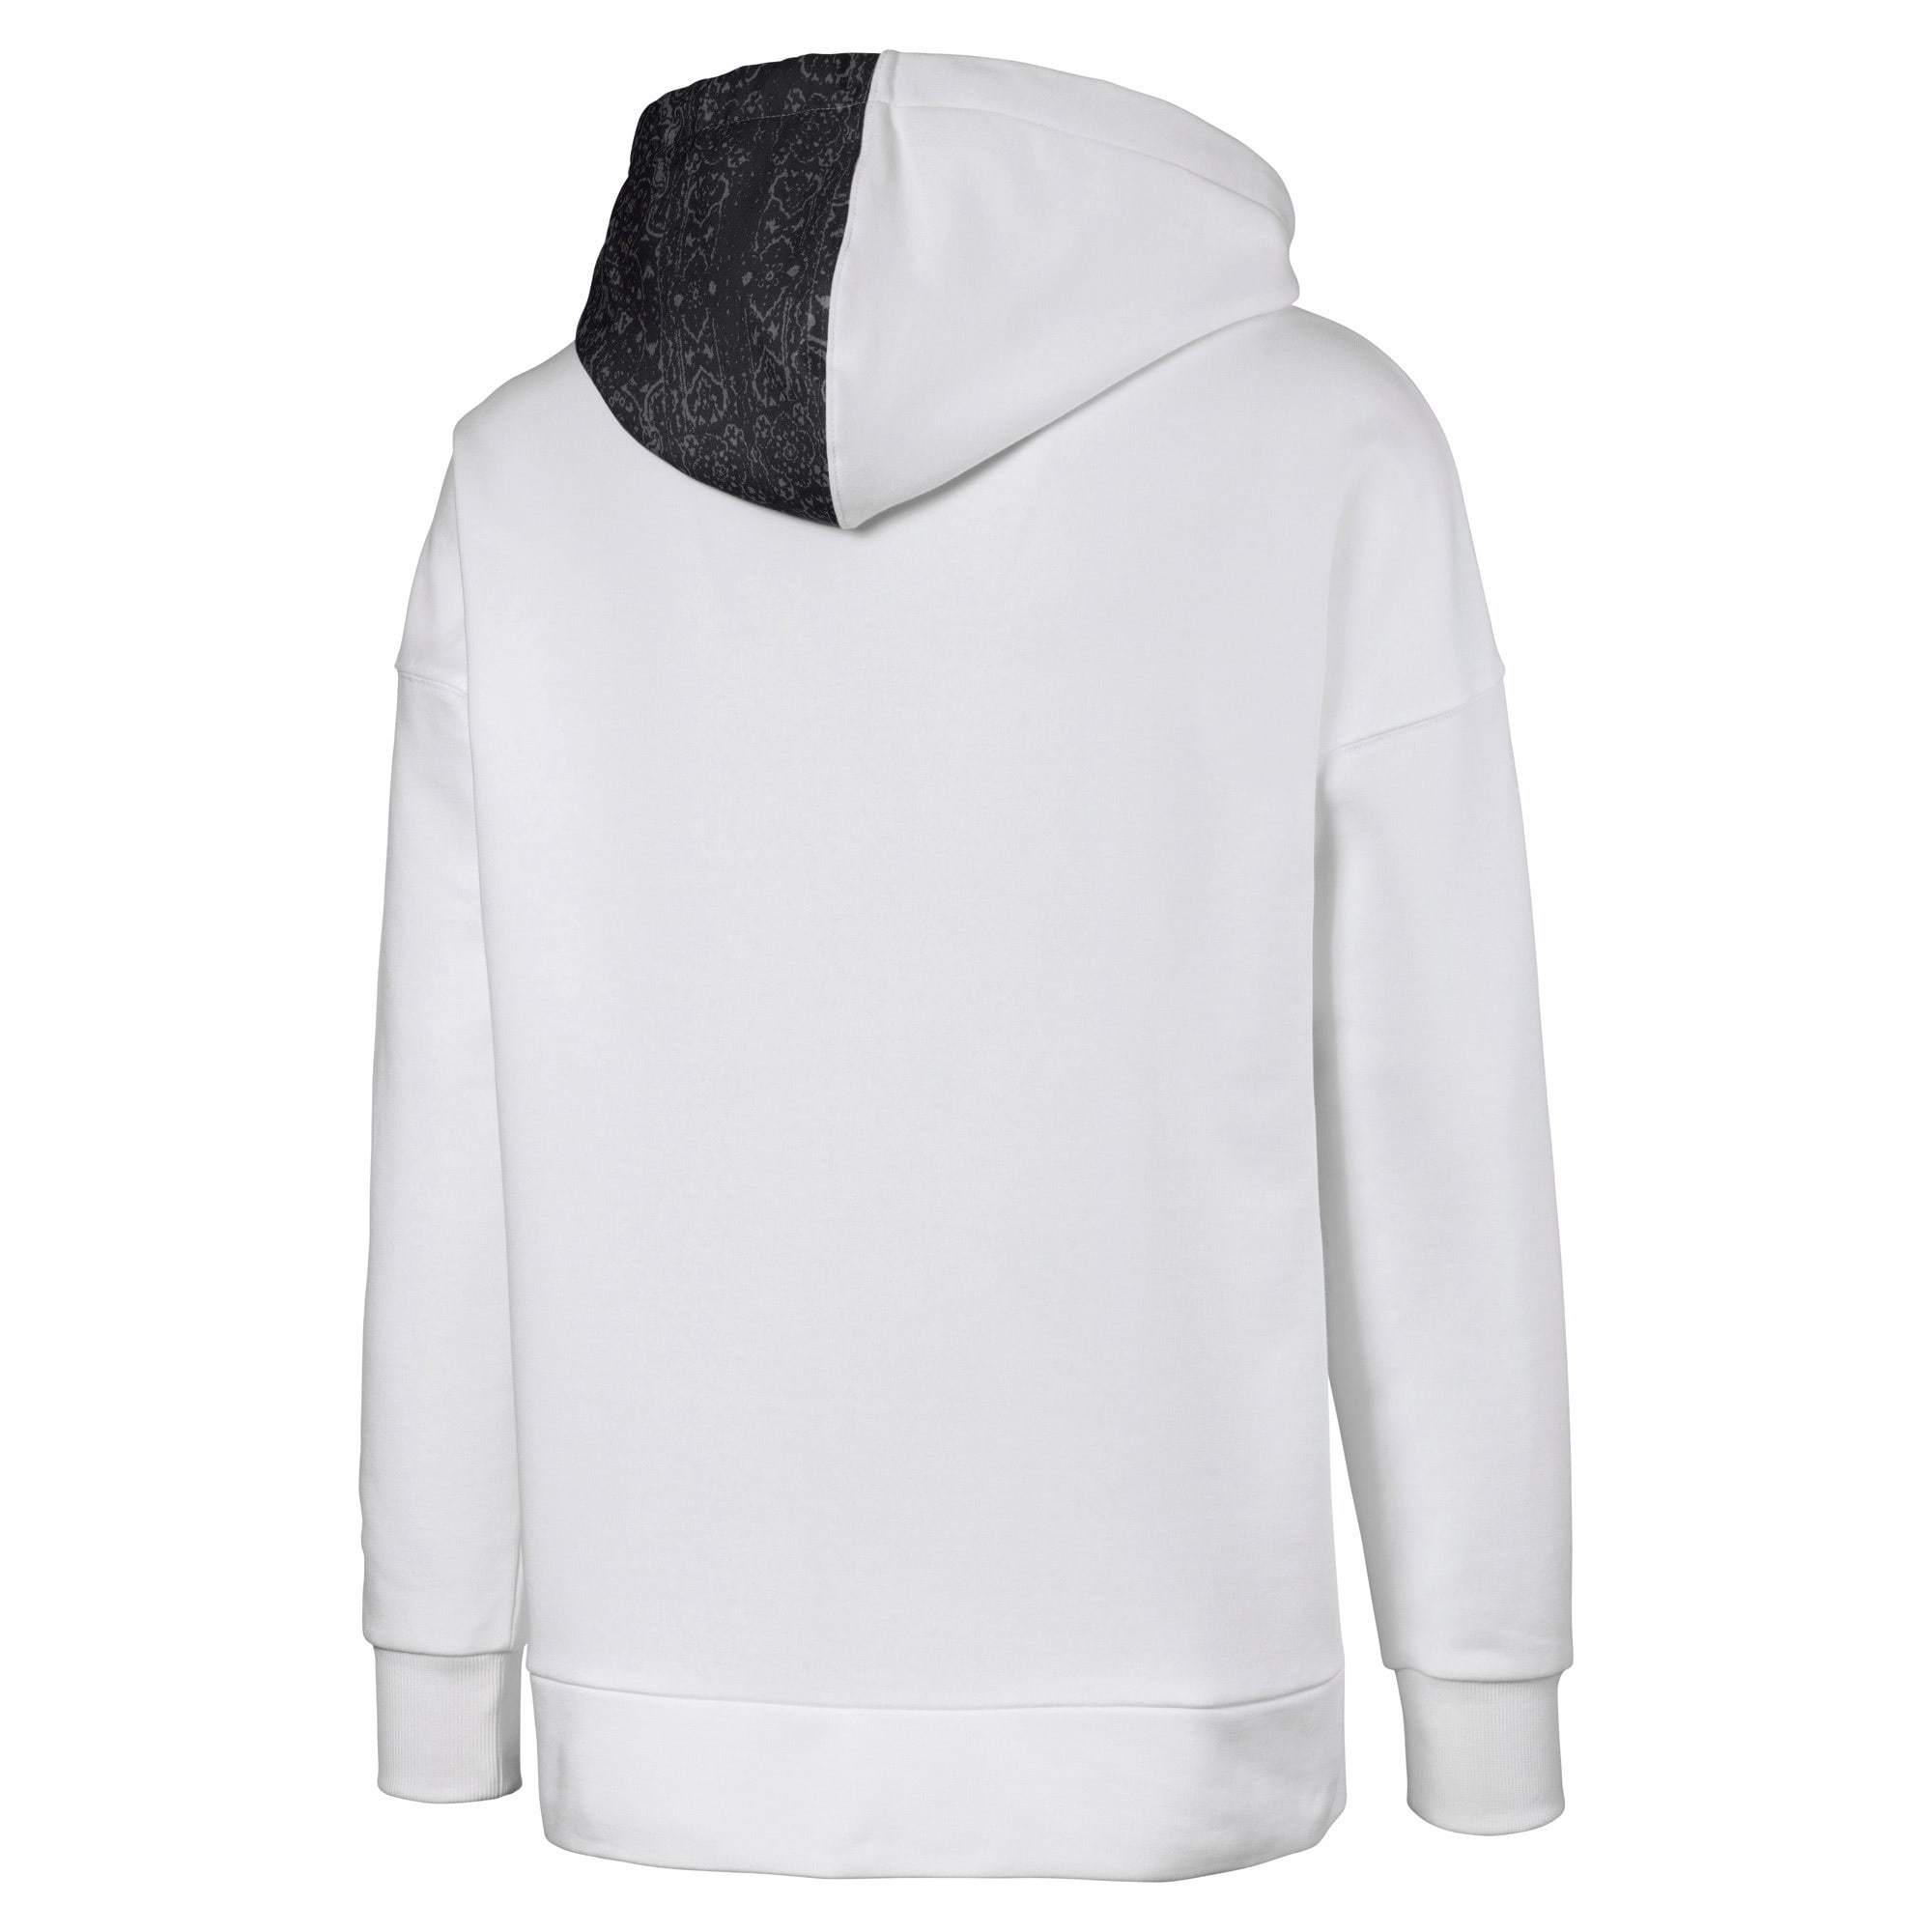 Thumbnail 5 of PUMA x LES BENJAMINS Men's Hoodie, Puma White, medium